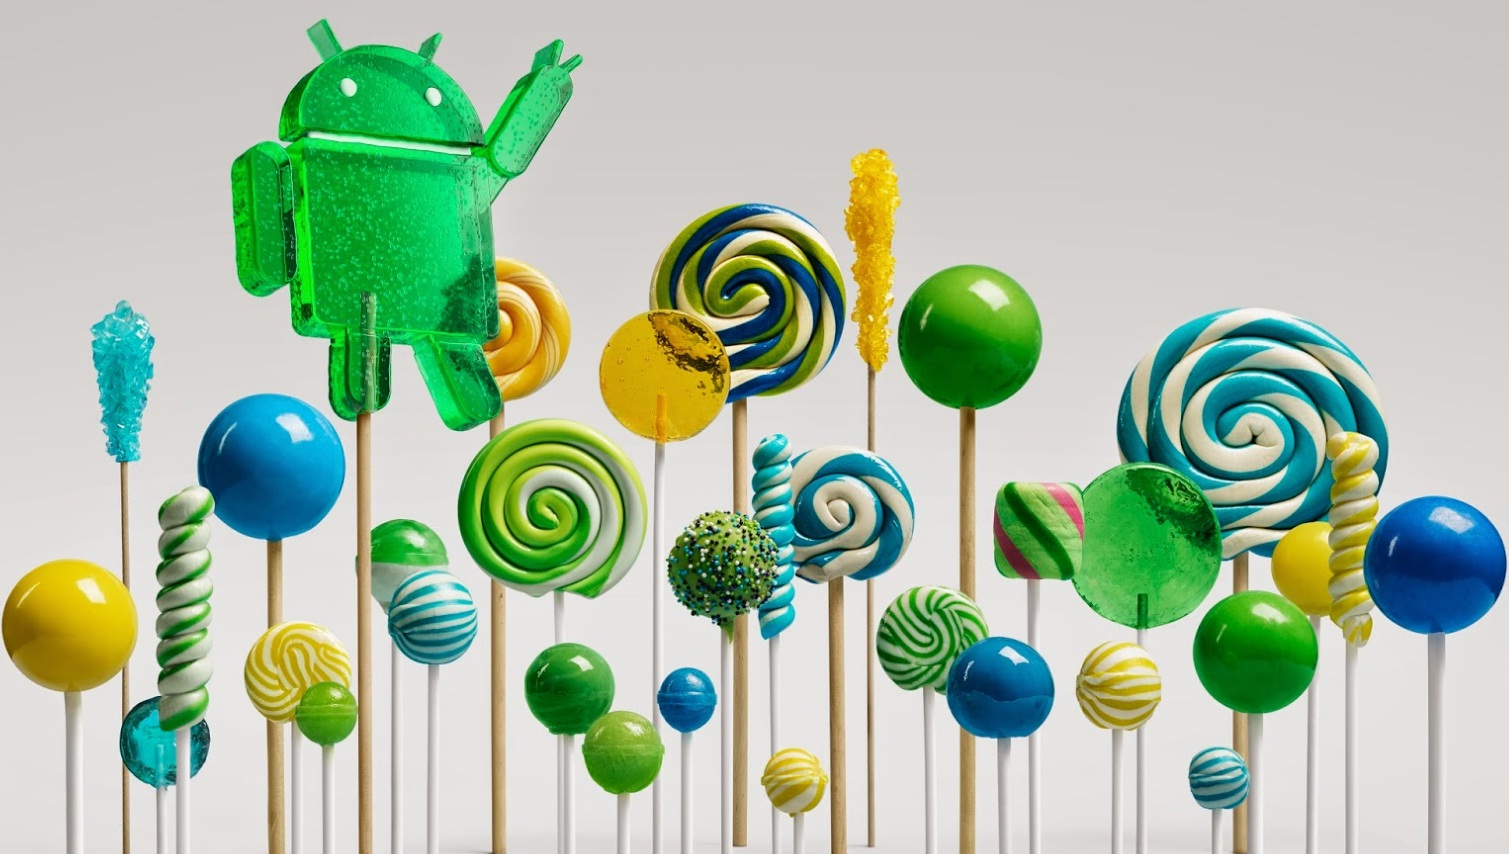 Android 5.0 Lollipop: How to Enable, Remove or Restrict Guest User Mode